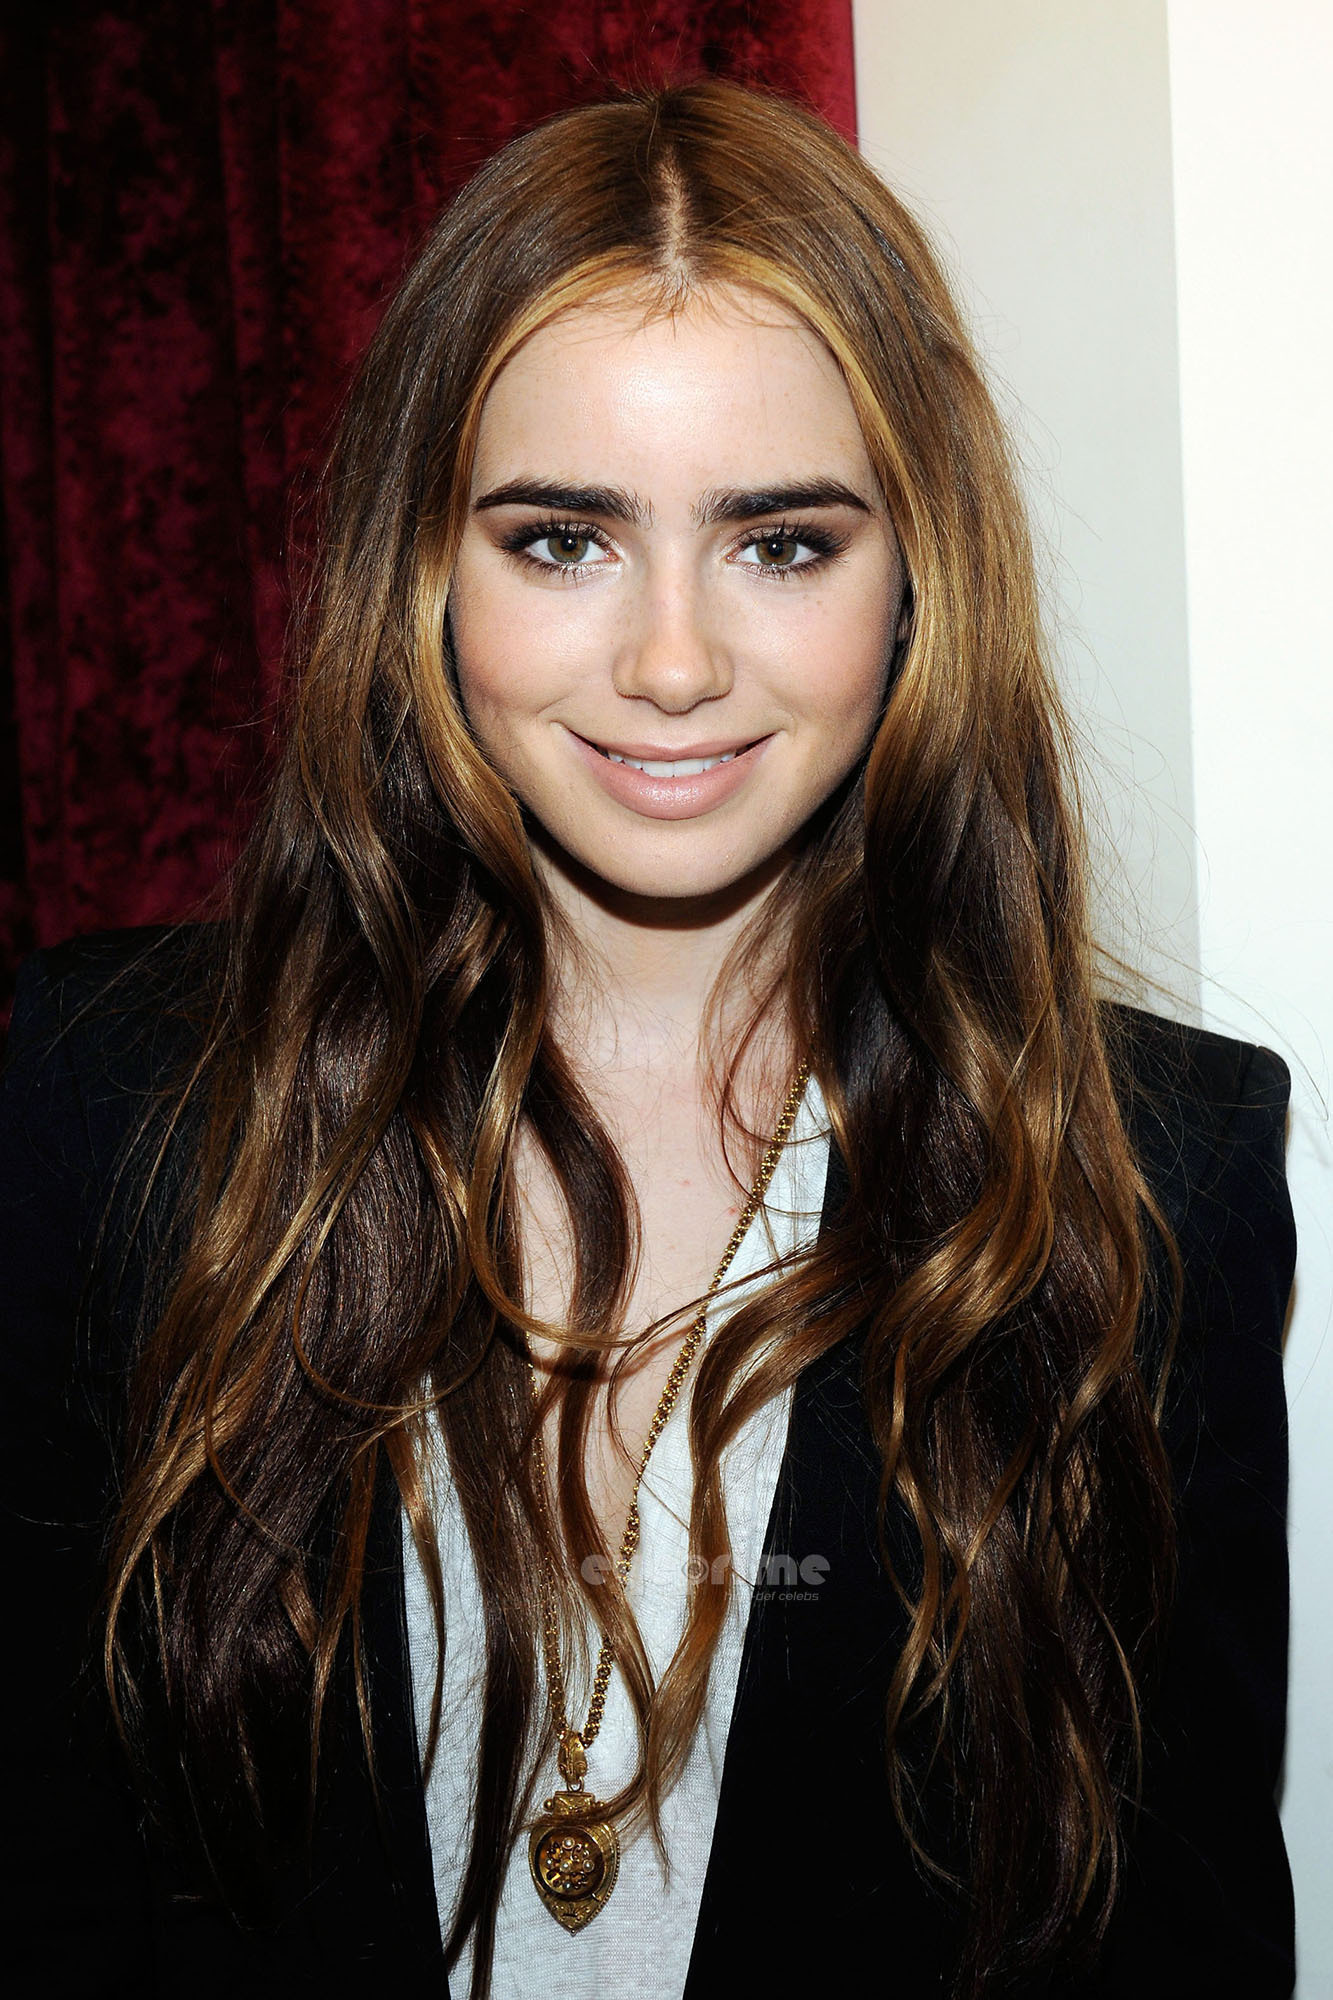 wallpapers website great: lily collins - wallpaper hot